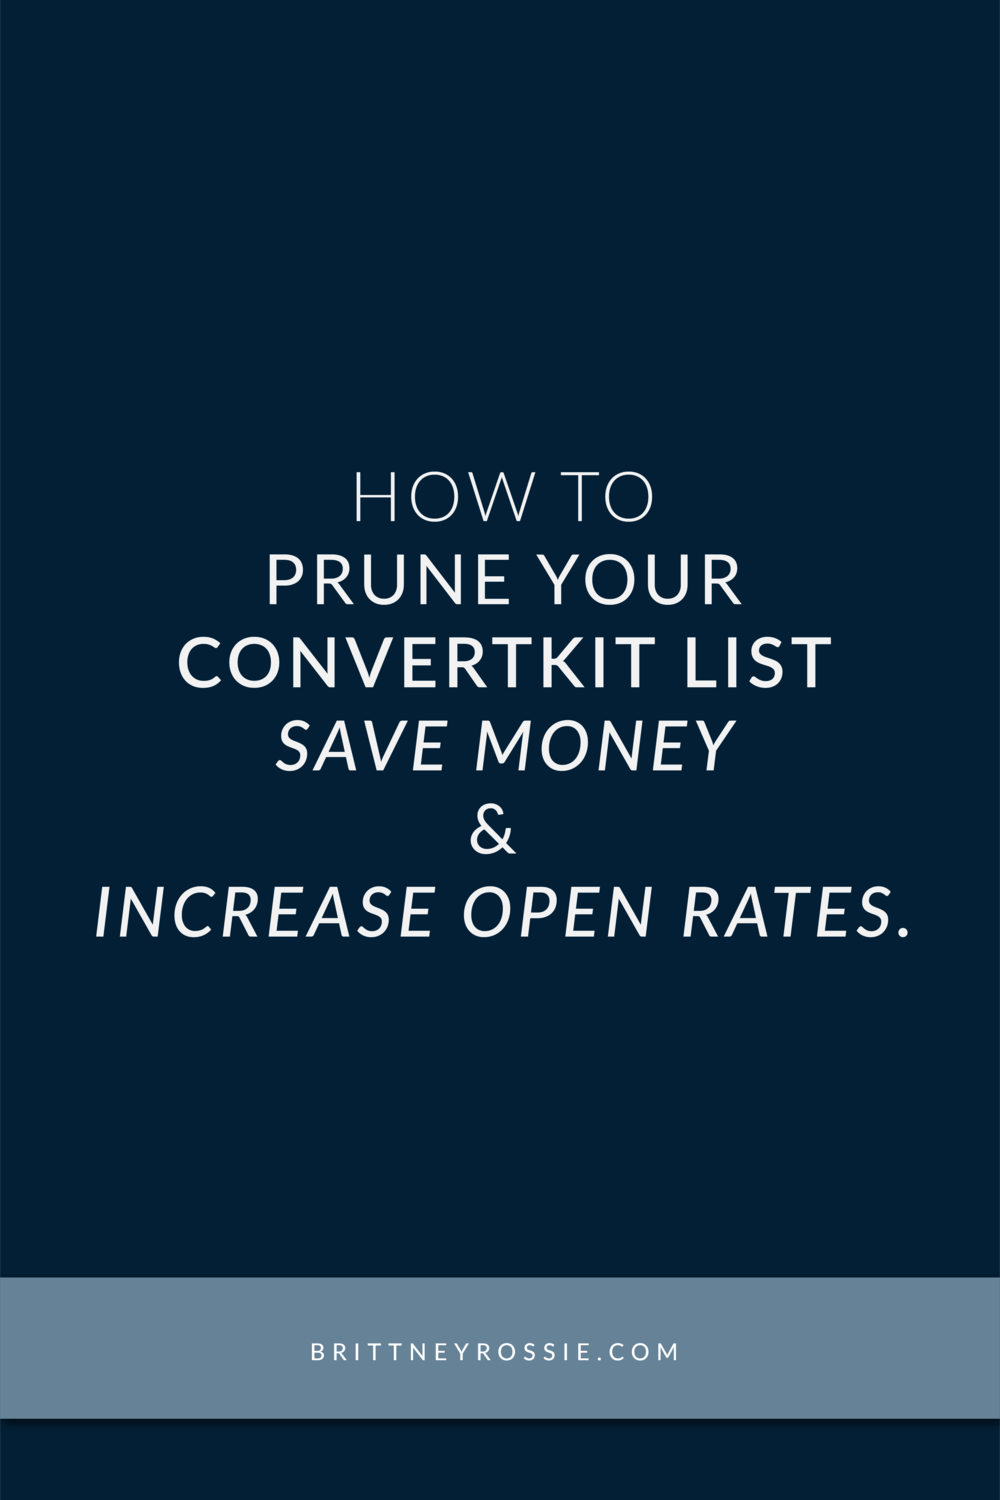 How-to-prune-your-convertkit-list-save-money-and-increase-open-rates-brittneyrossie.com.png